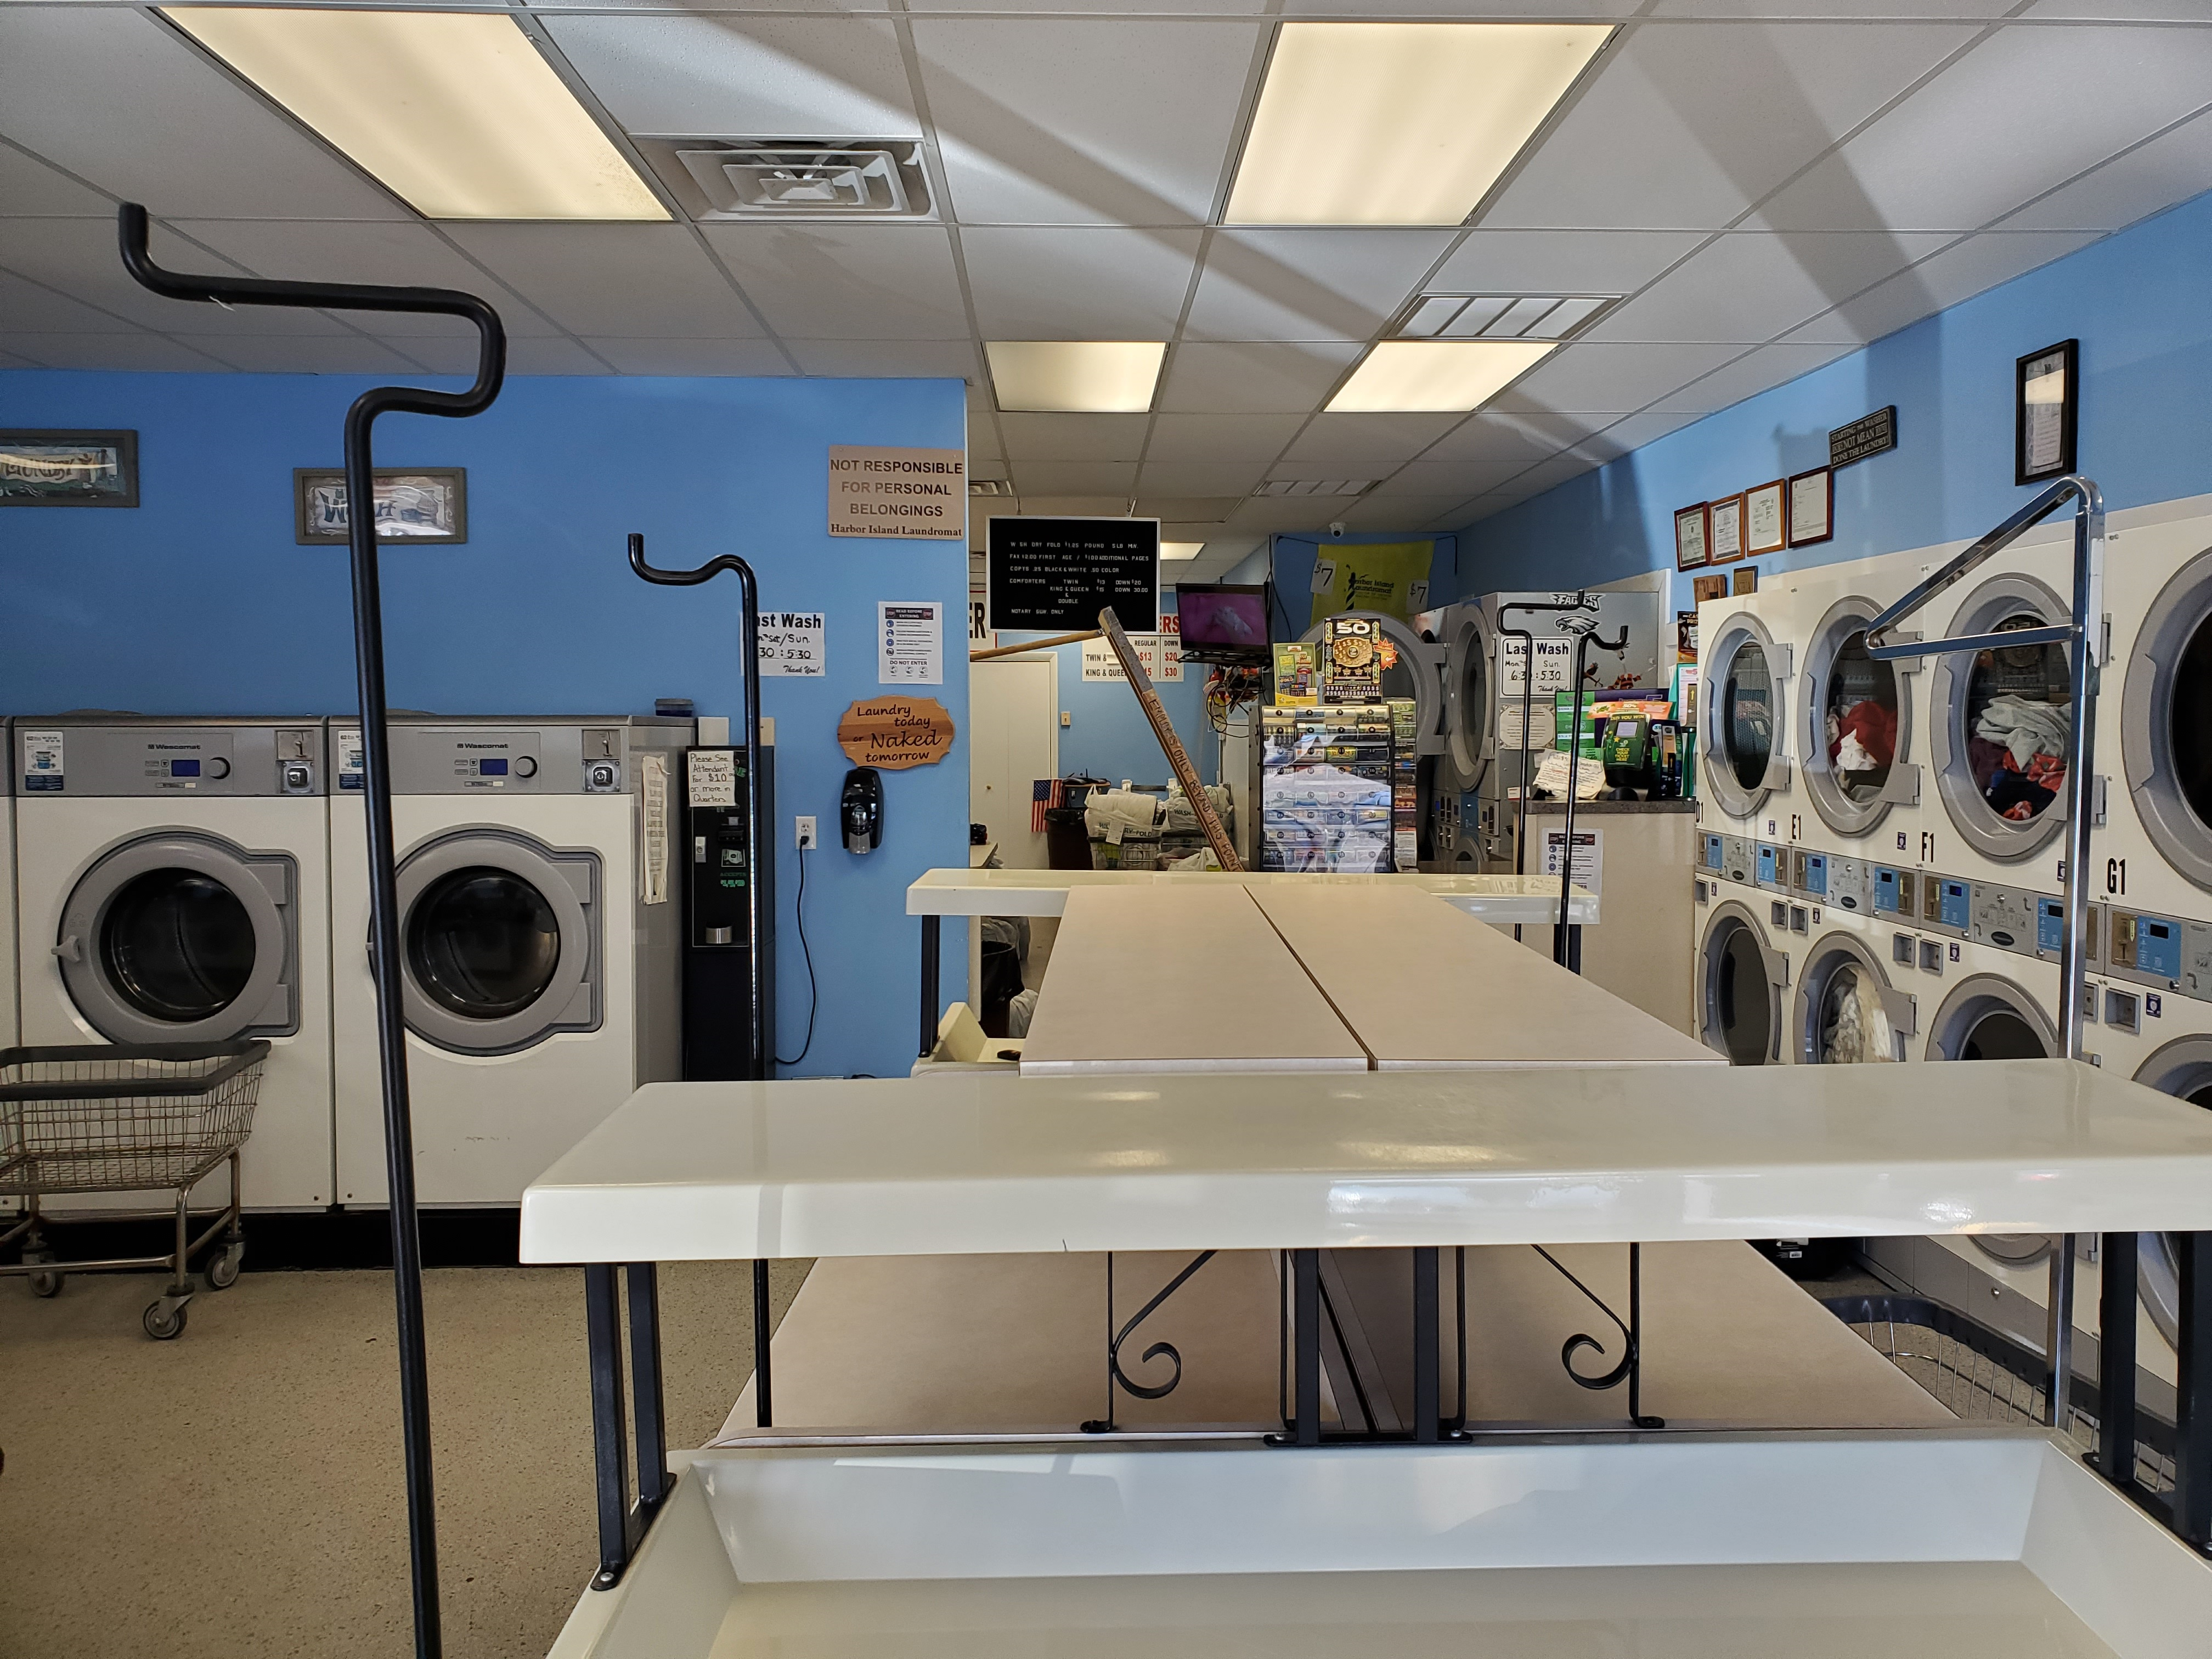 Absentee Laundromat for sale in Ocean County